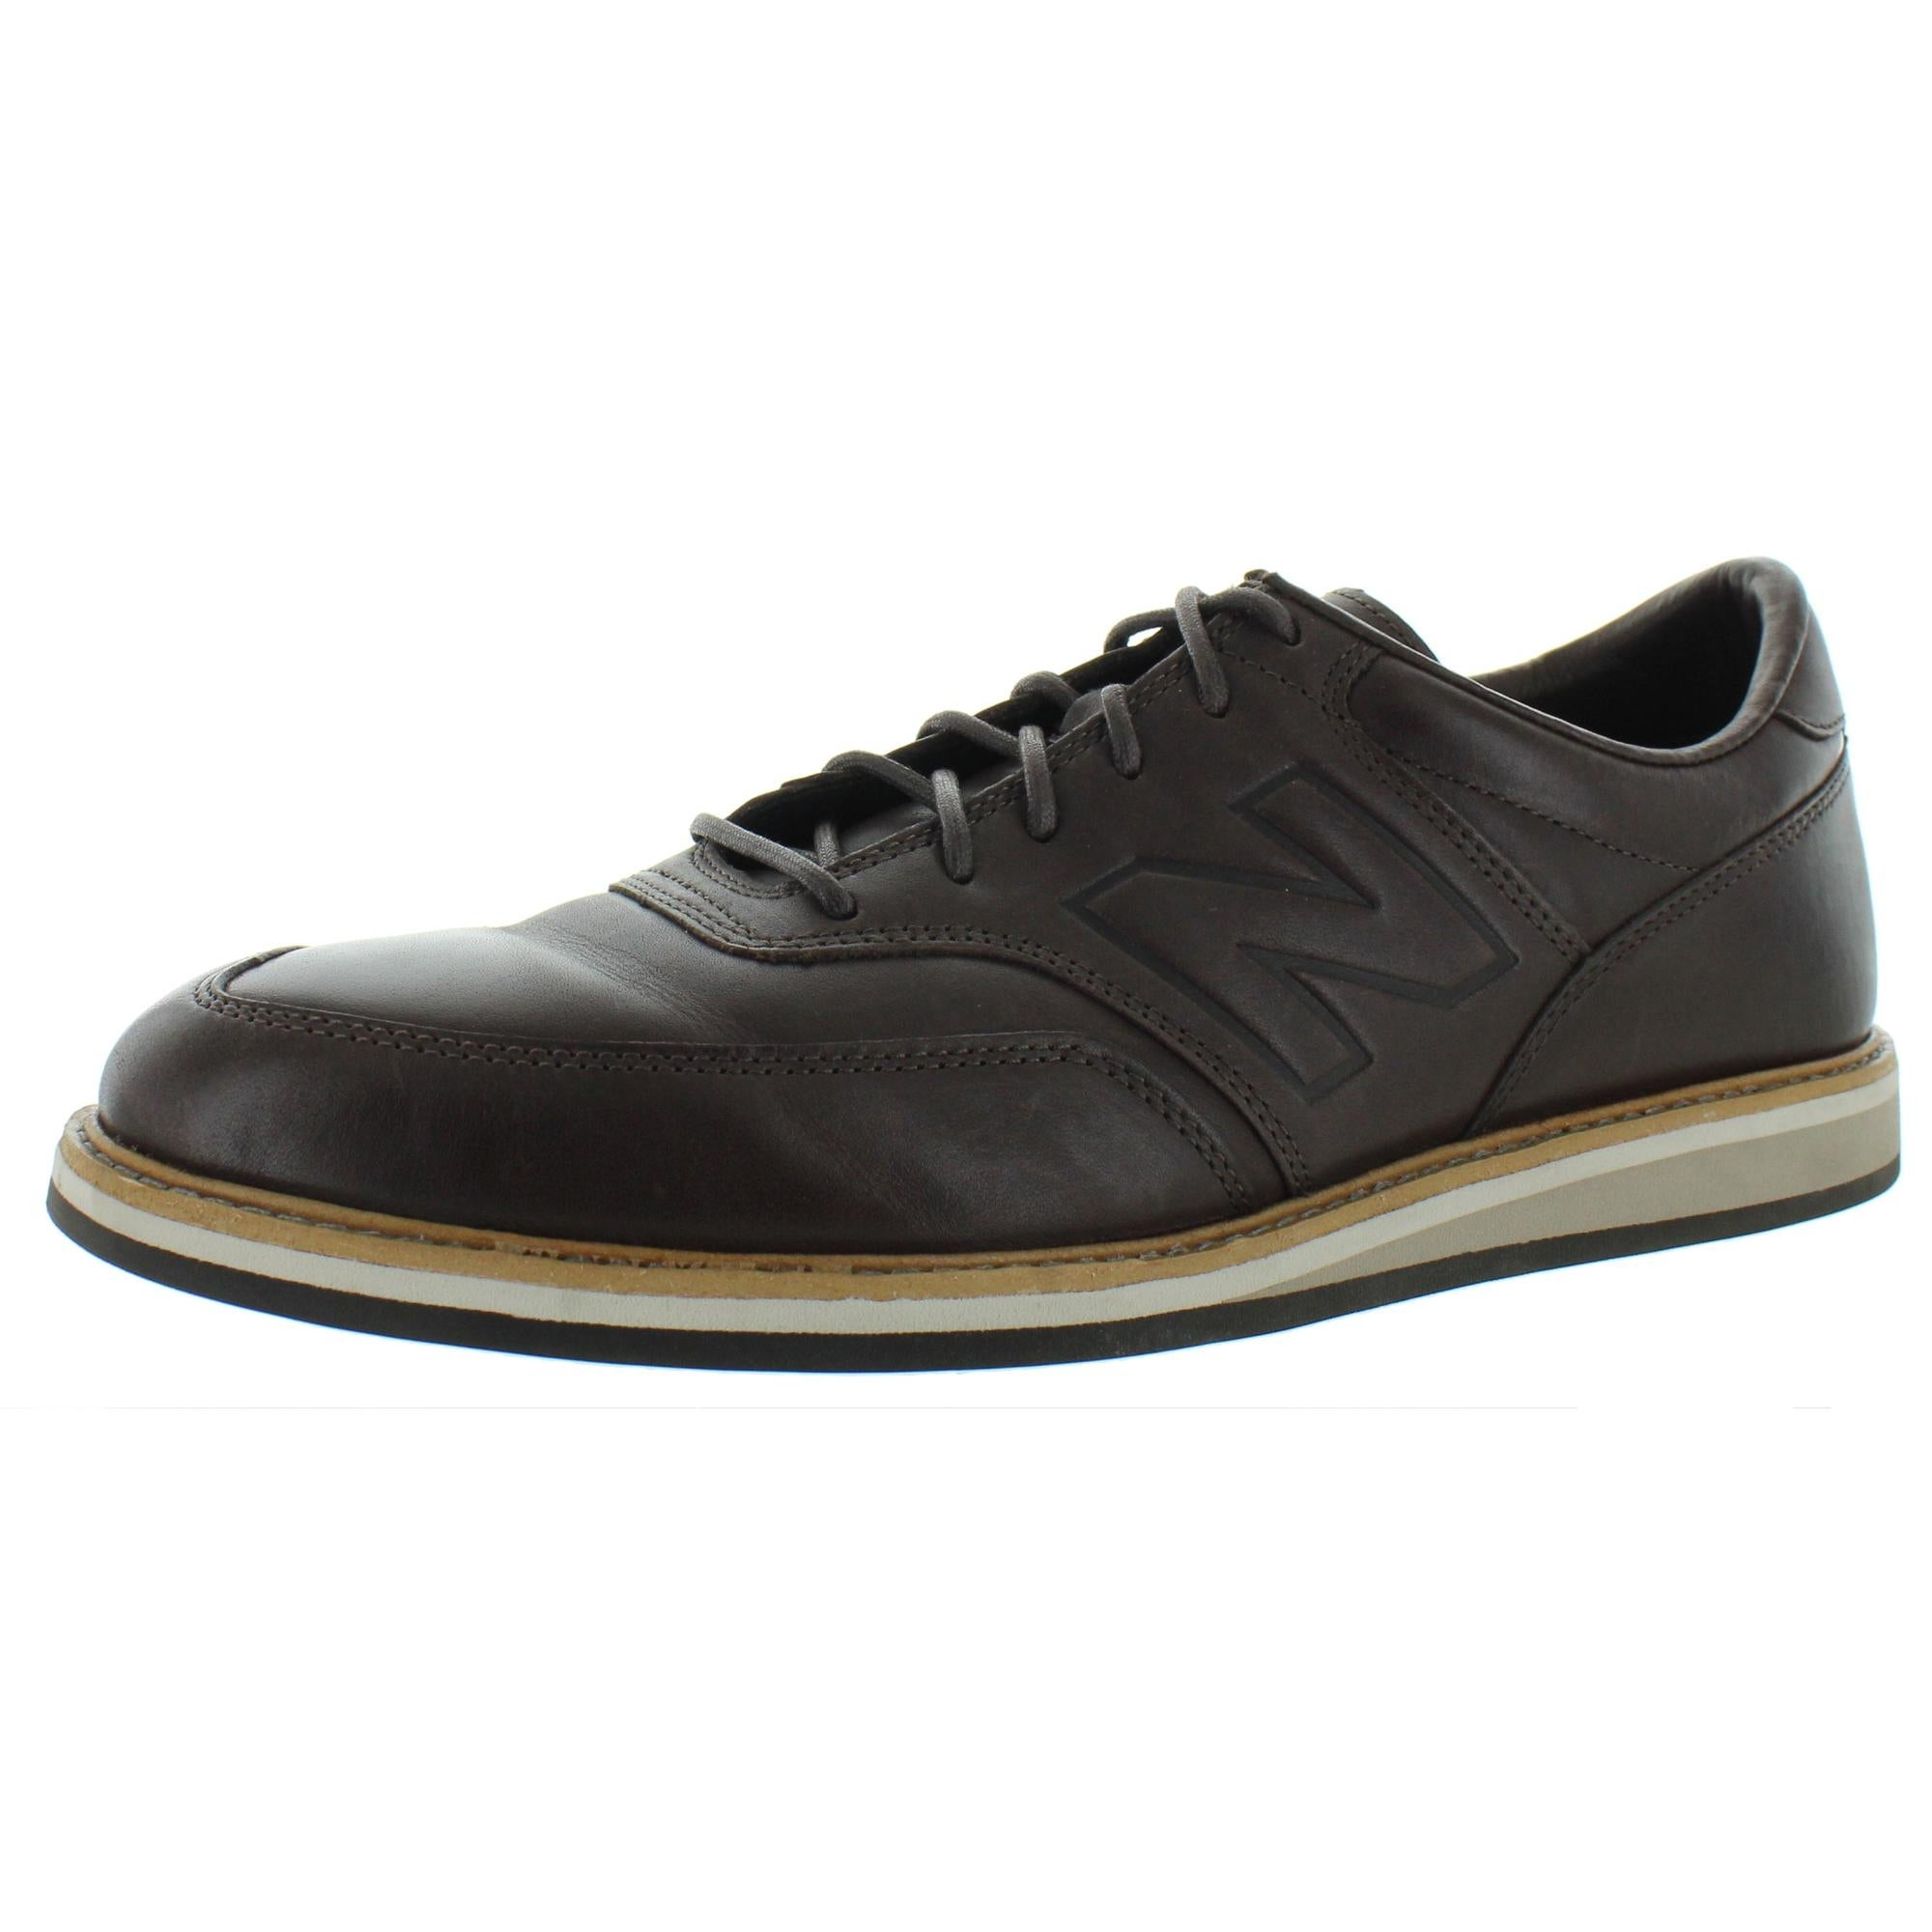 new balance mens casual shoes